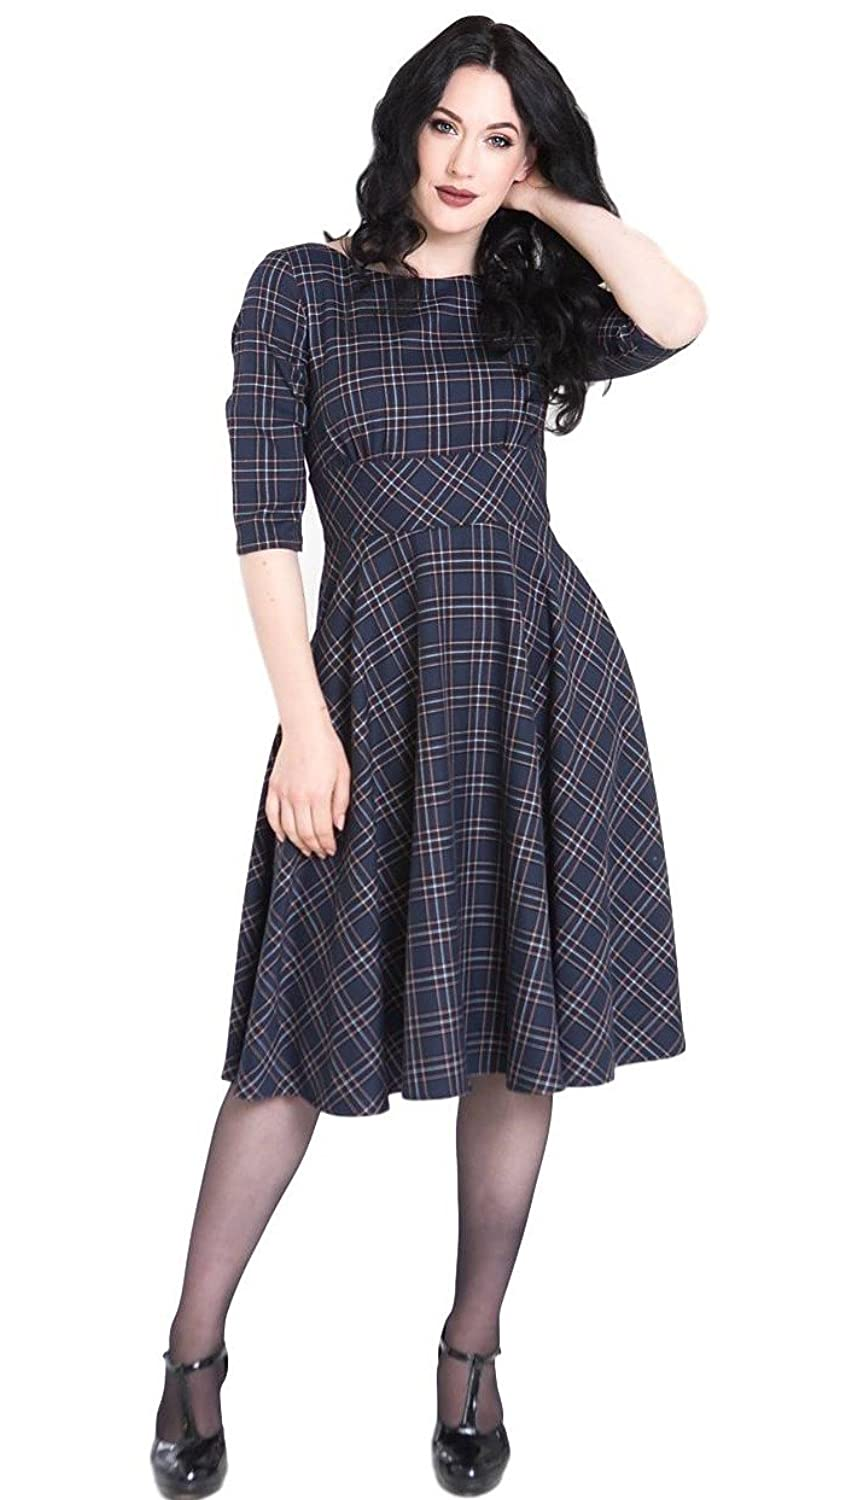 Pin Up Dresses | Pinup Clothing & Fashion Hell Bunny Peebles Tartan 1950s Vintage Retro Dress $74.99 AT vintagedancer.com